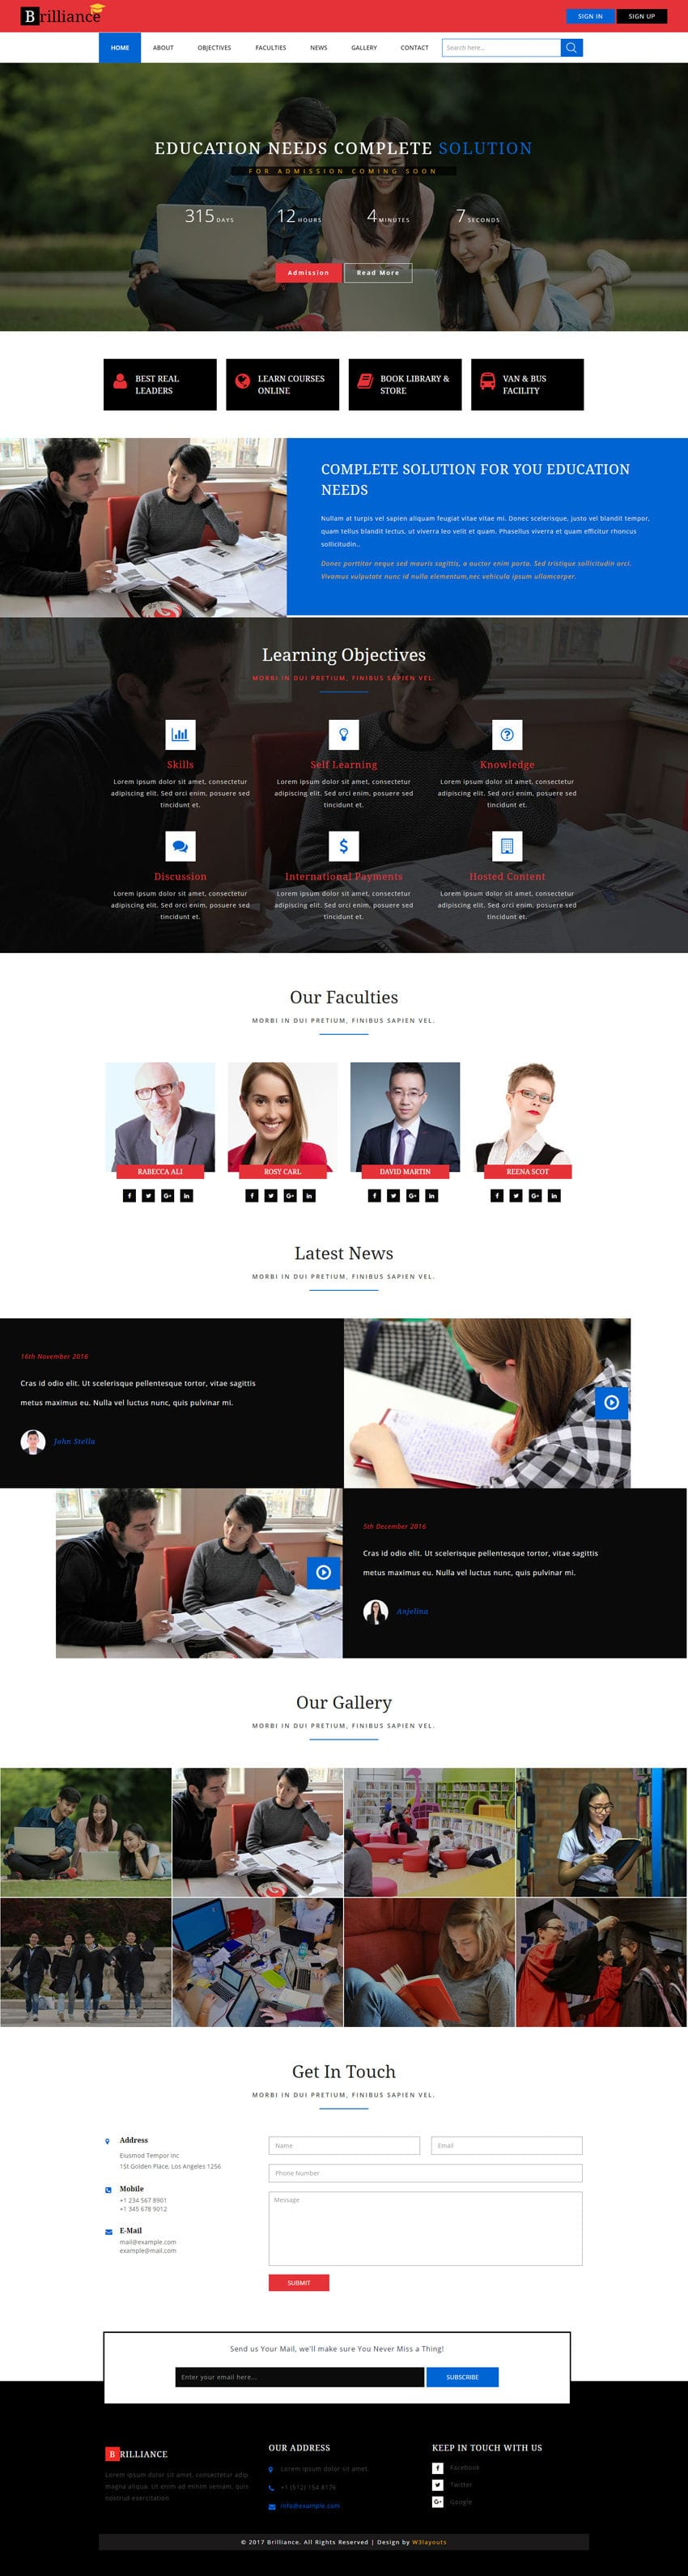 Brilliance An Education Category Flat Bootstrap Responsive Web Template - Complete website templates free download